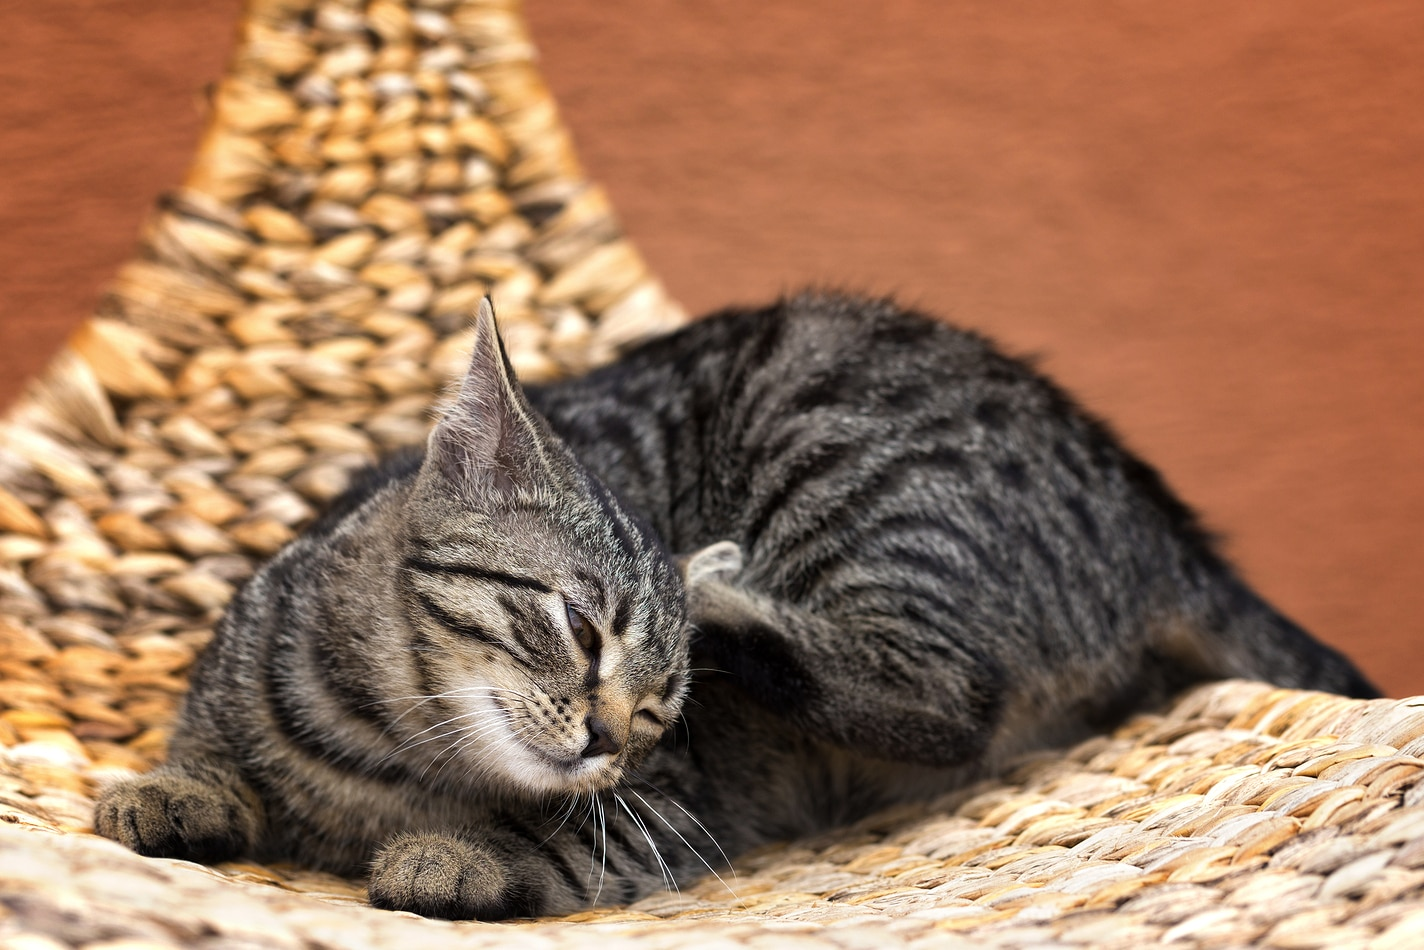 Striped gray cat scratching cat on a wicker chair in garden